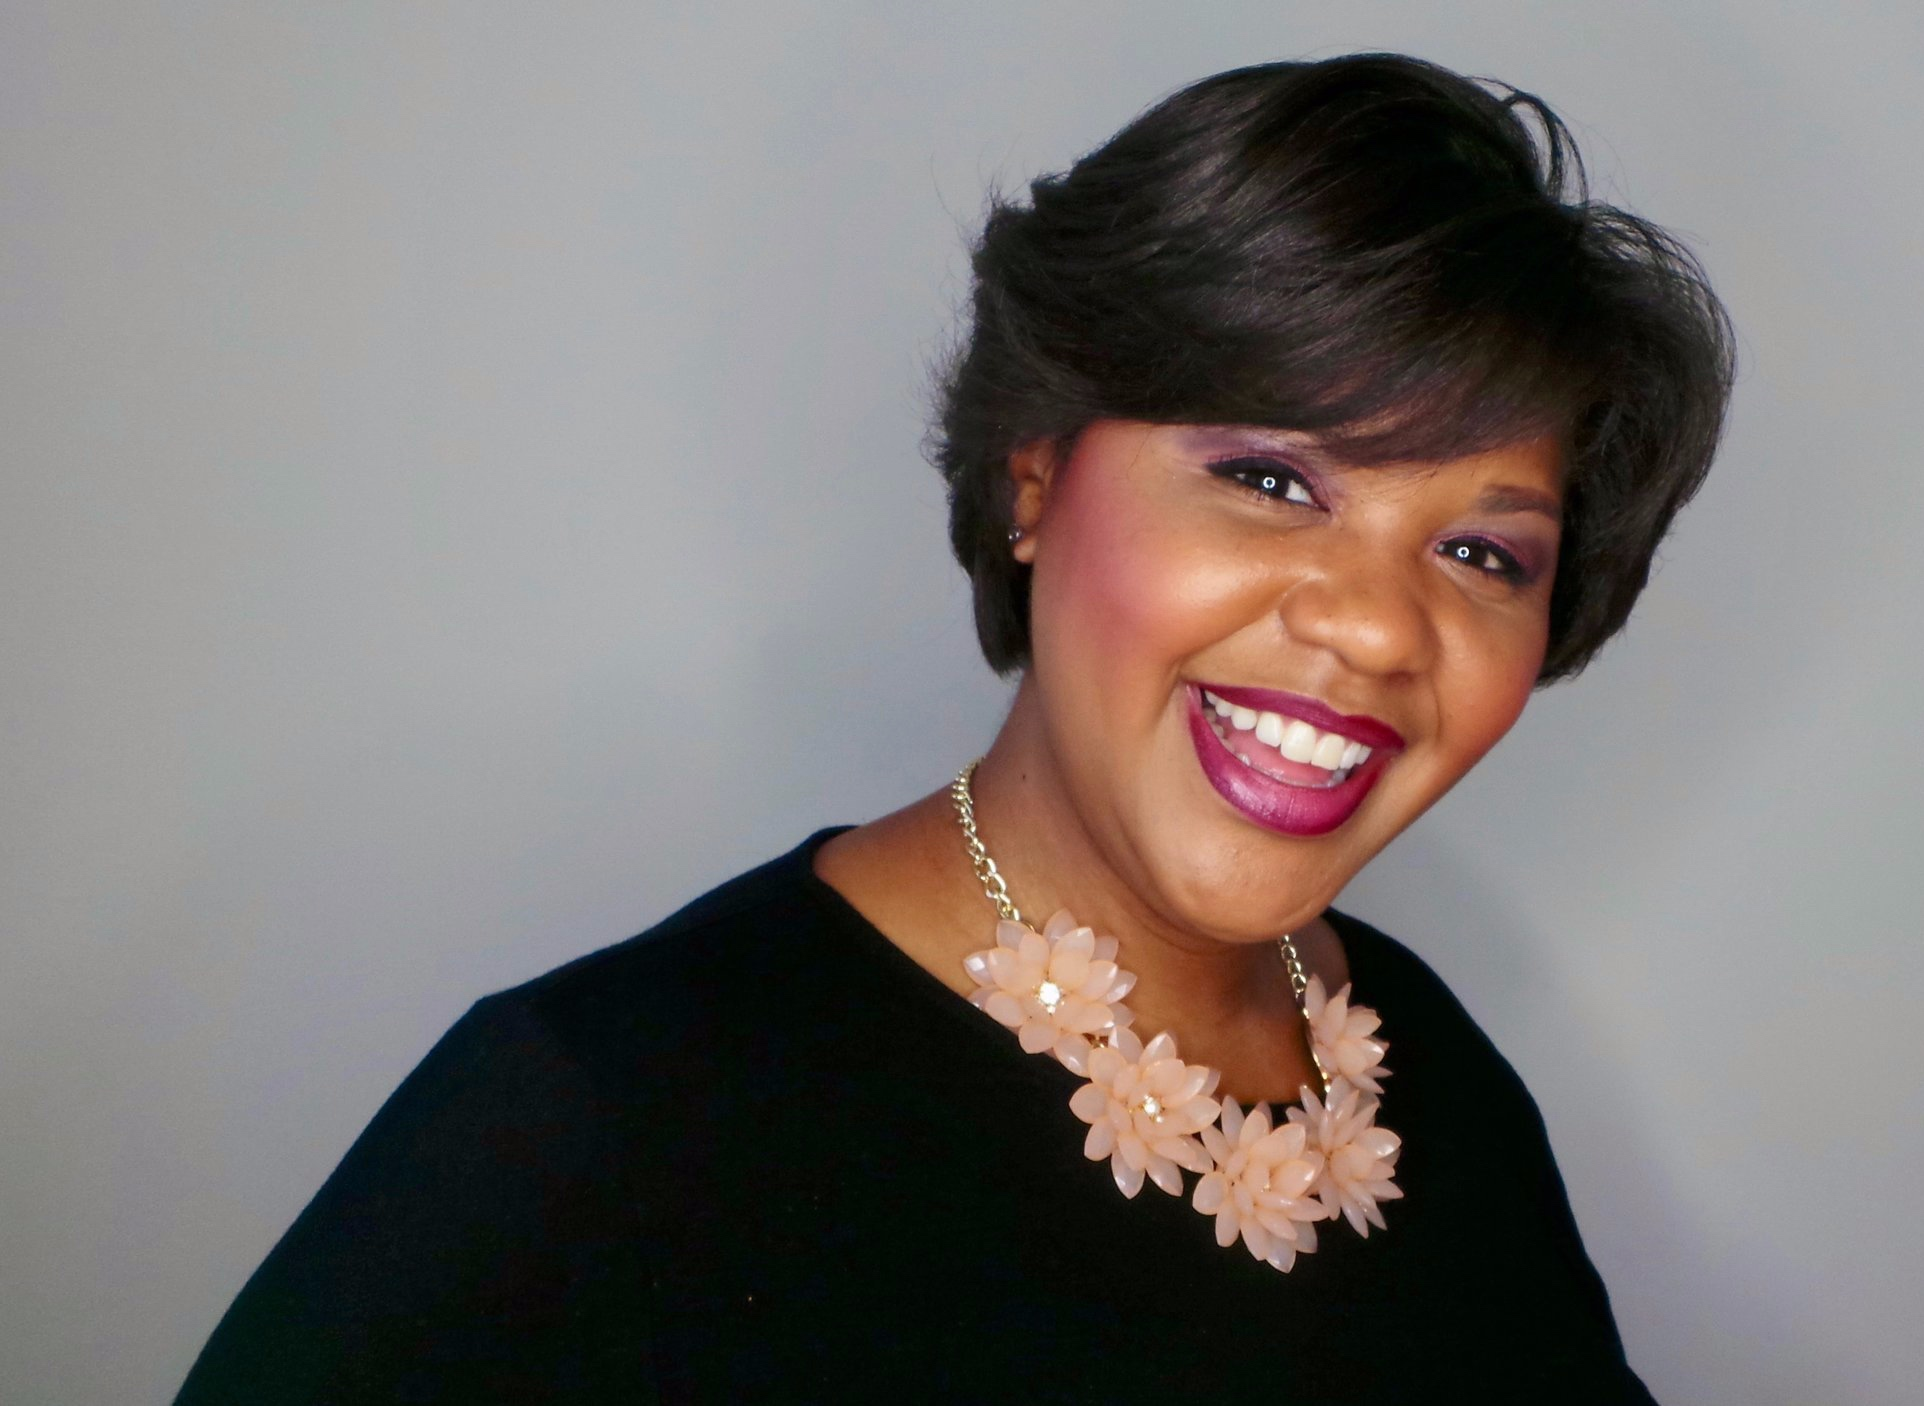 ALL ABOUT ME - Lou Ella Kemp is a Jersey Girl and currently a resident of Chesapeake, VA. She is a Squarespace web designer with over 20 plus years of experience, creating gorgeous and engaging websites that provide strong visual branding.NEED A SQUARESPACE DESIGNER?